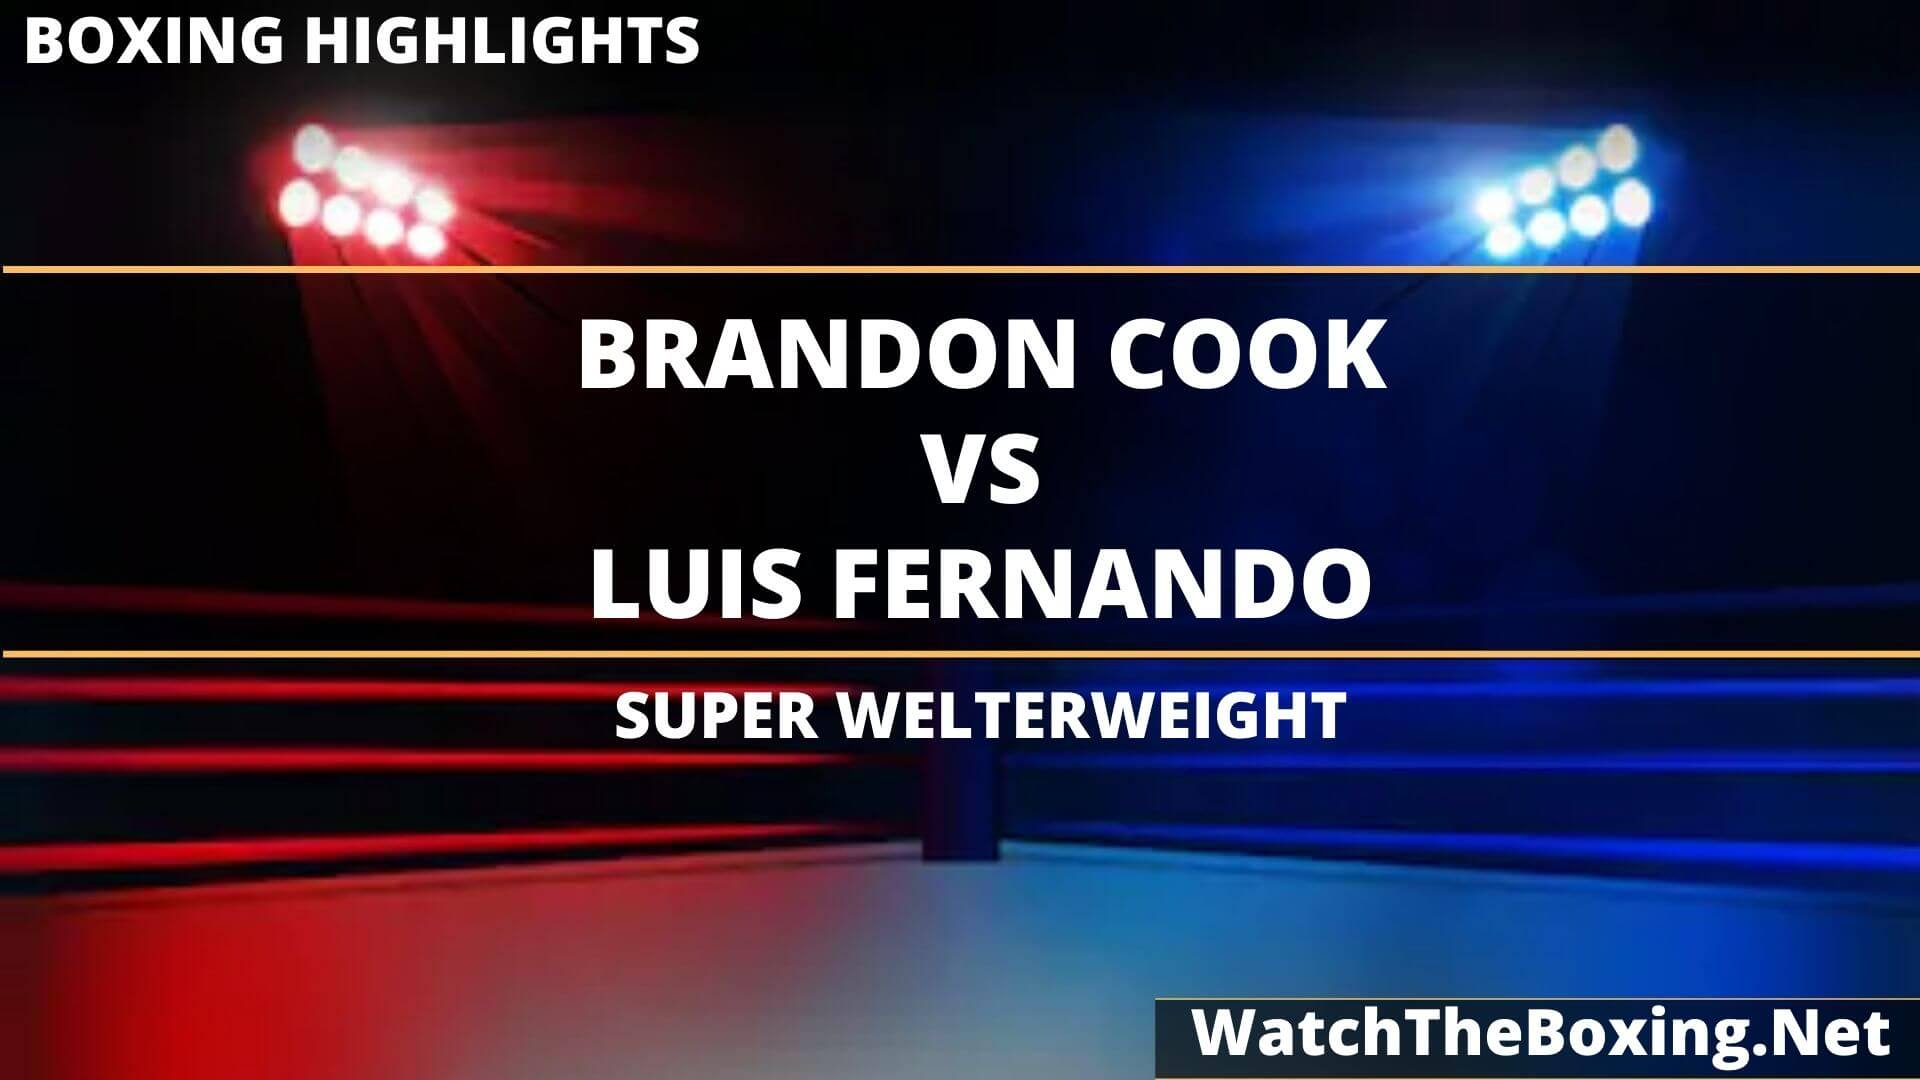 Brandon Cook Vs Luis Fernando Highlights 2020